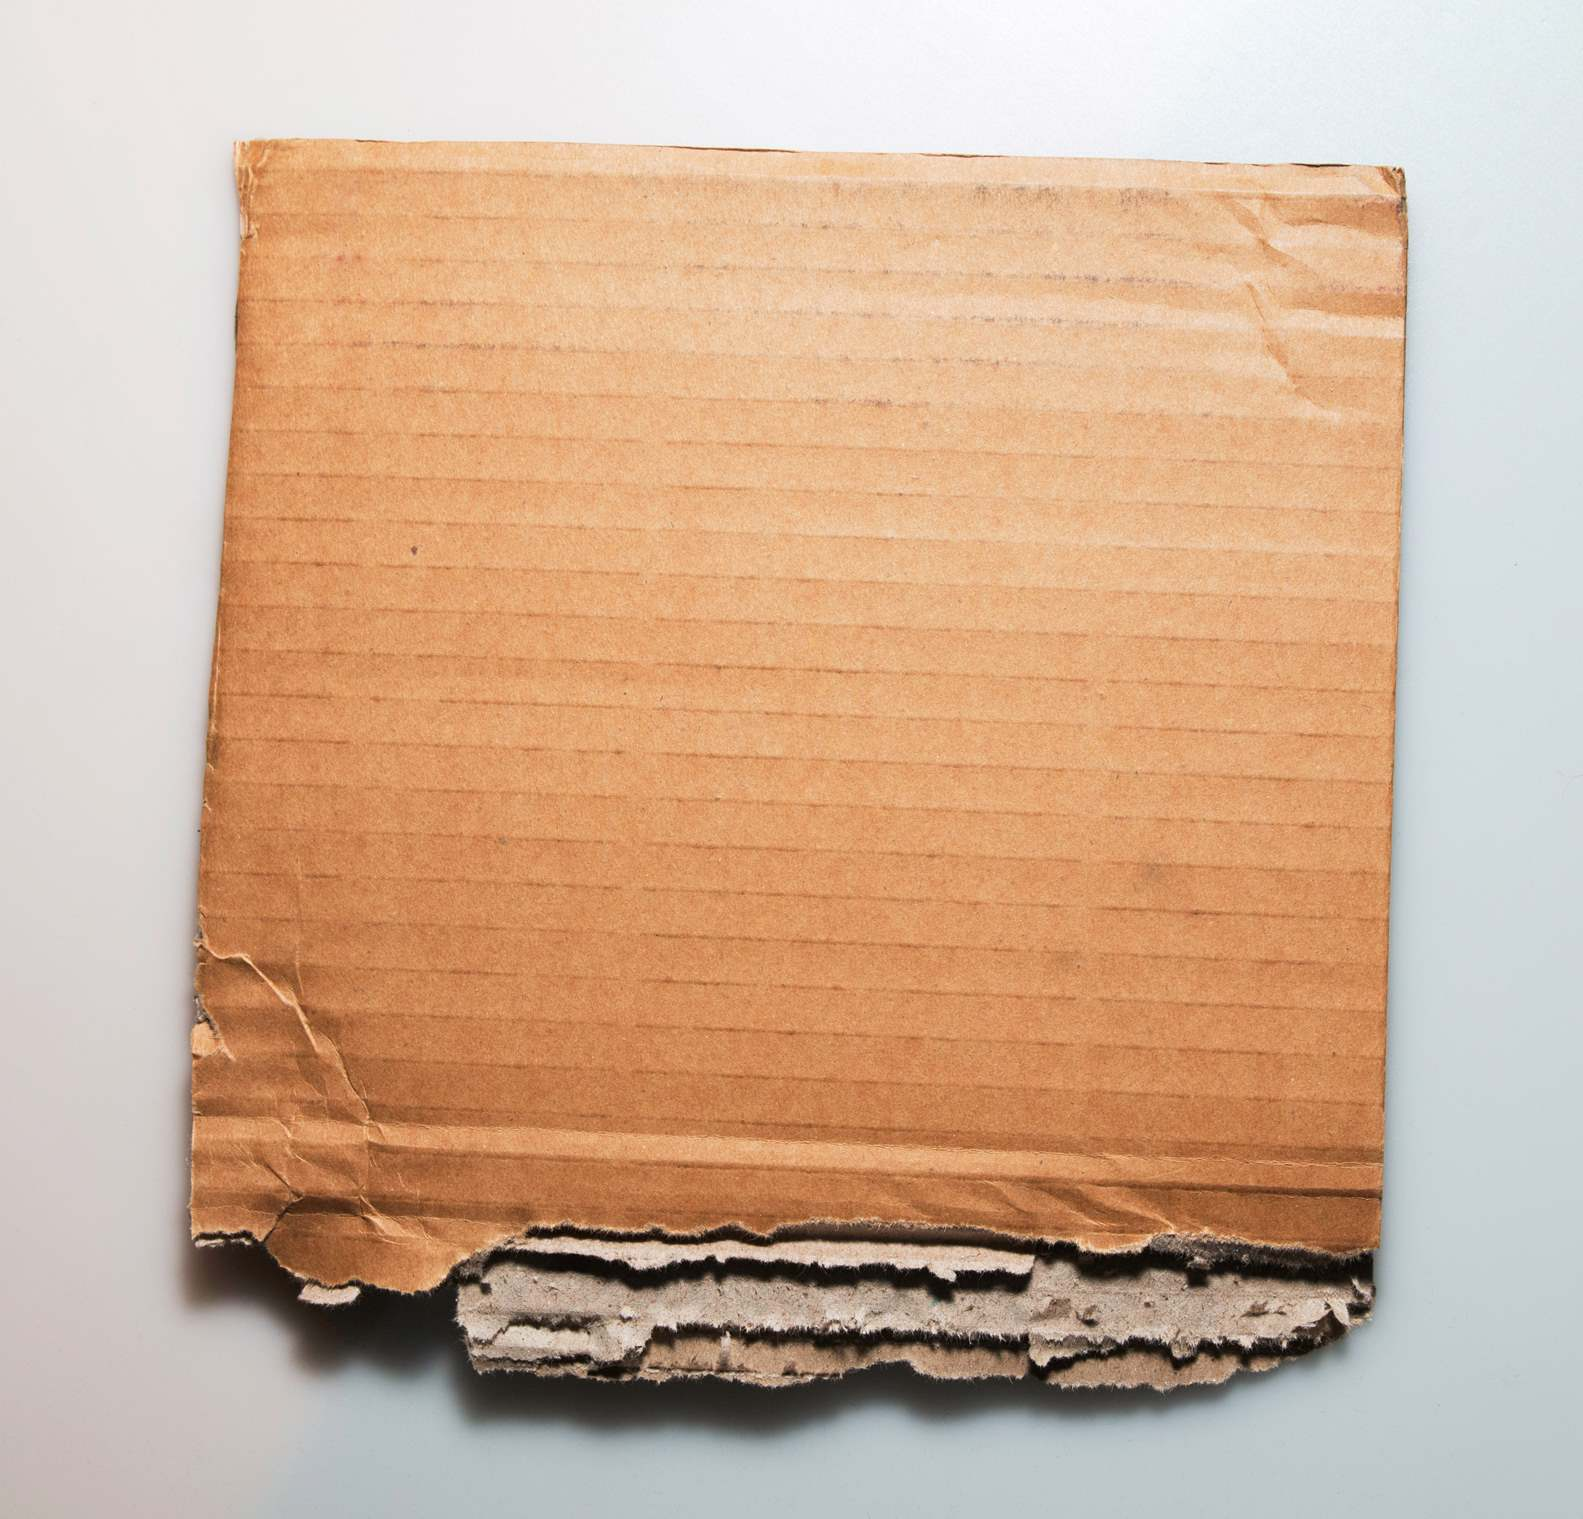 Torn Cardboard Paper On White Background - PhotoHDX